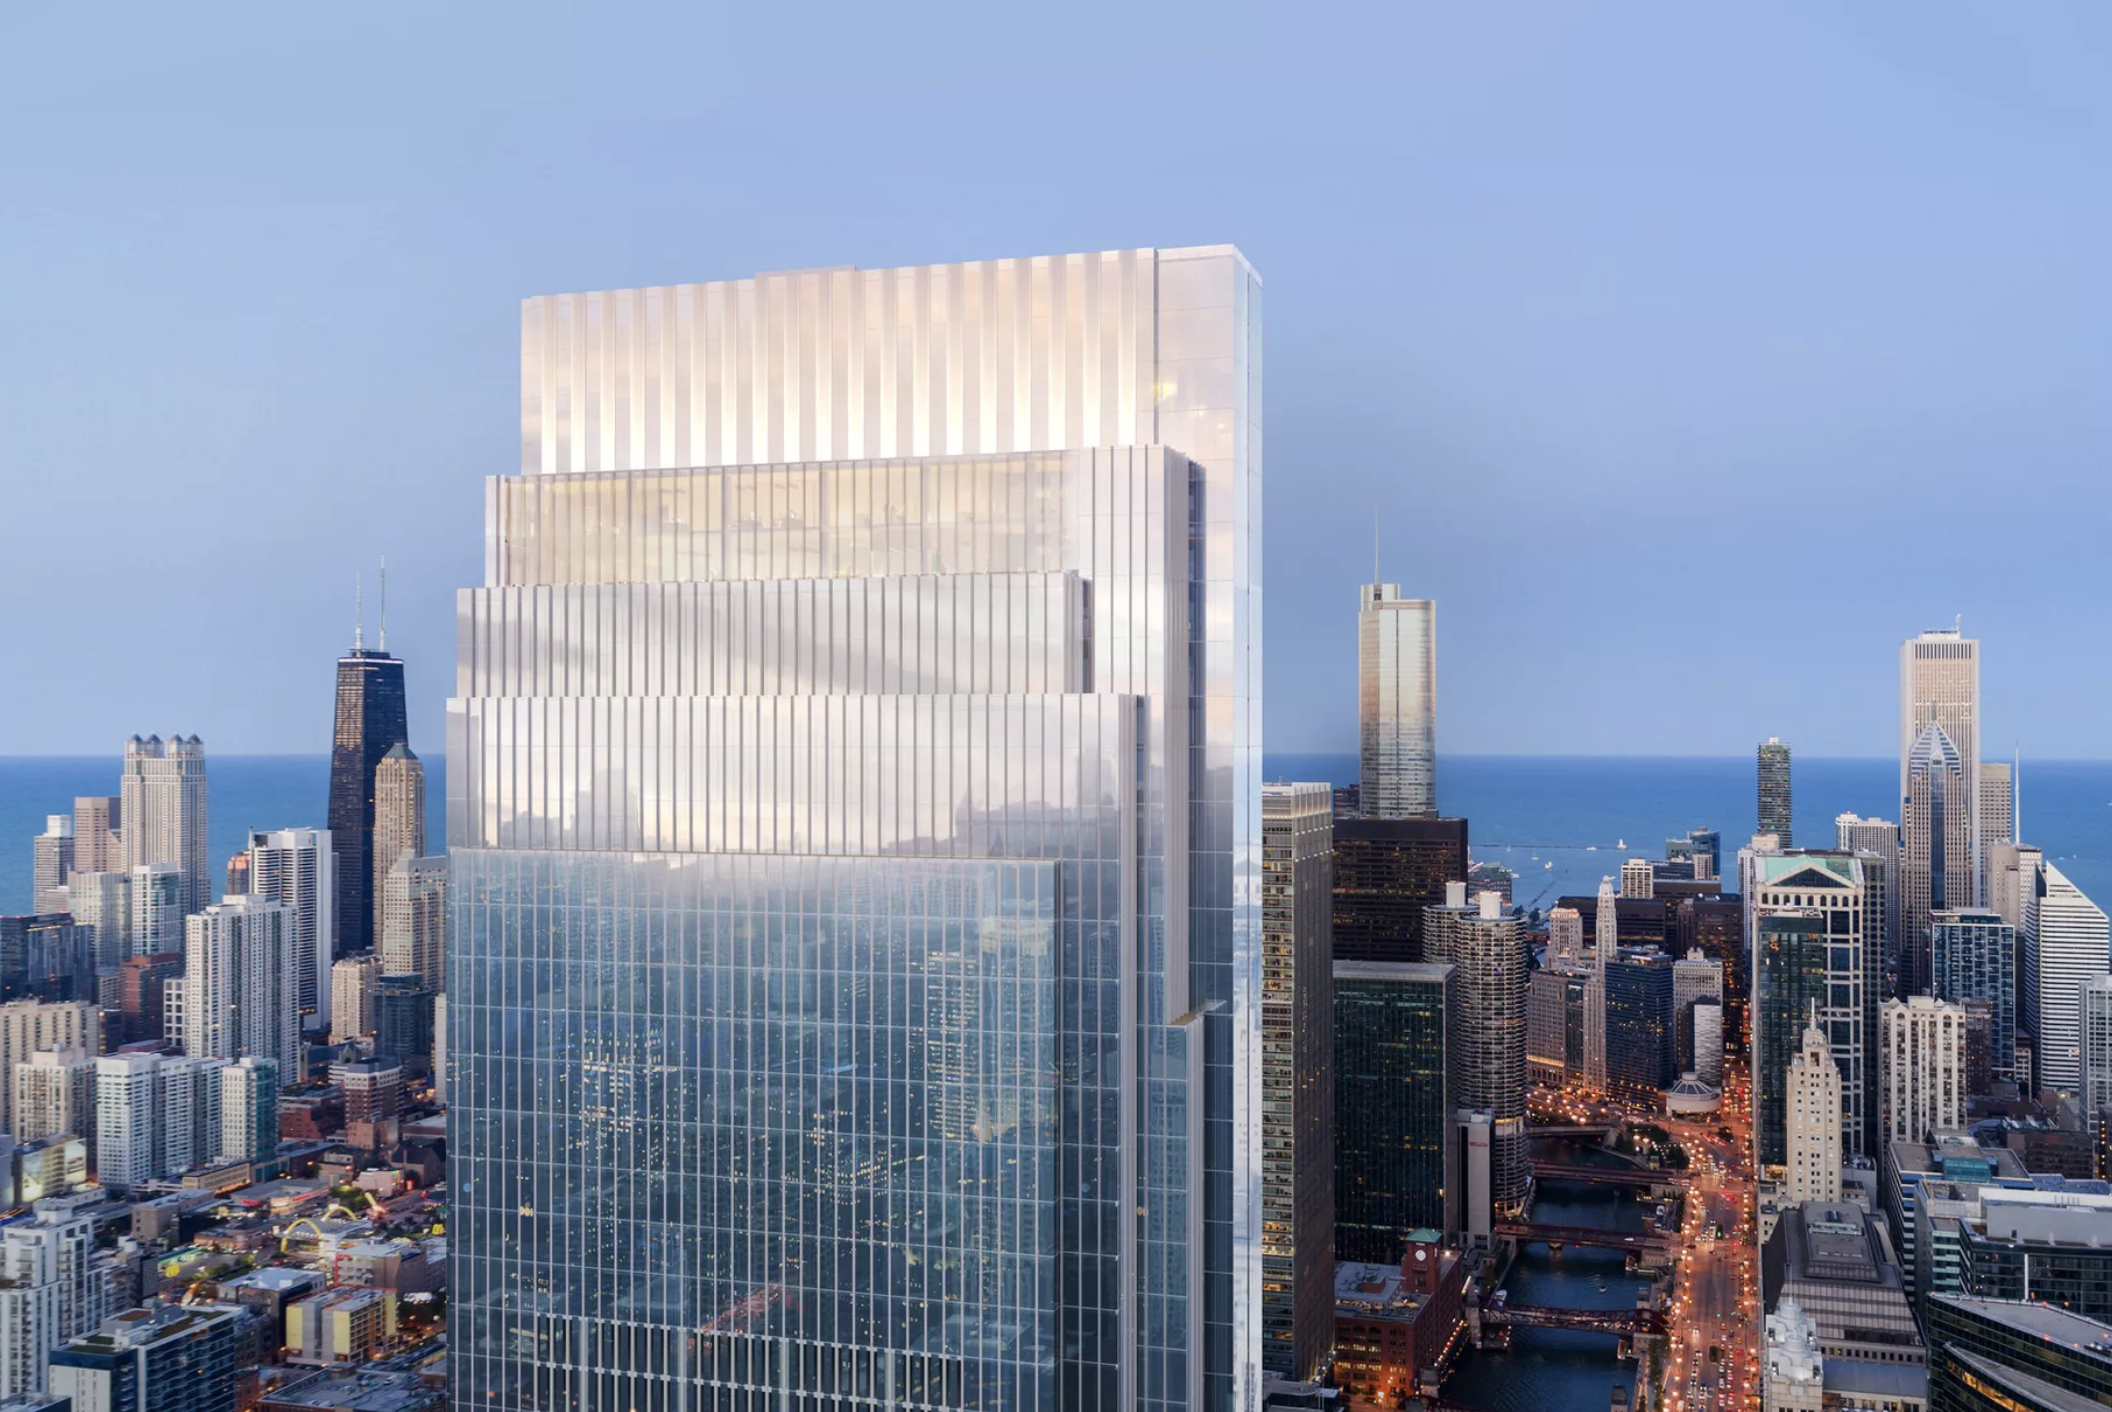 Tall skyscrapers in Chicago. In the foreground is a skyscraper with a square top and glass facade.